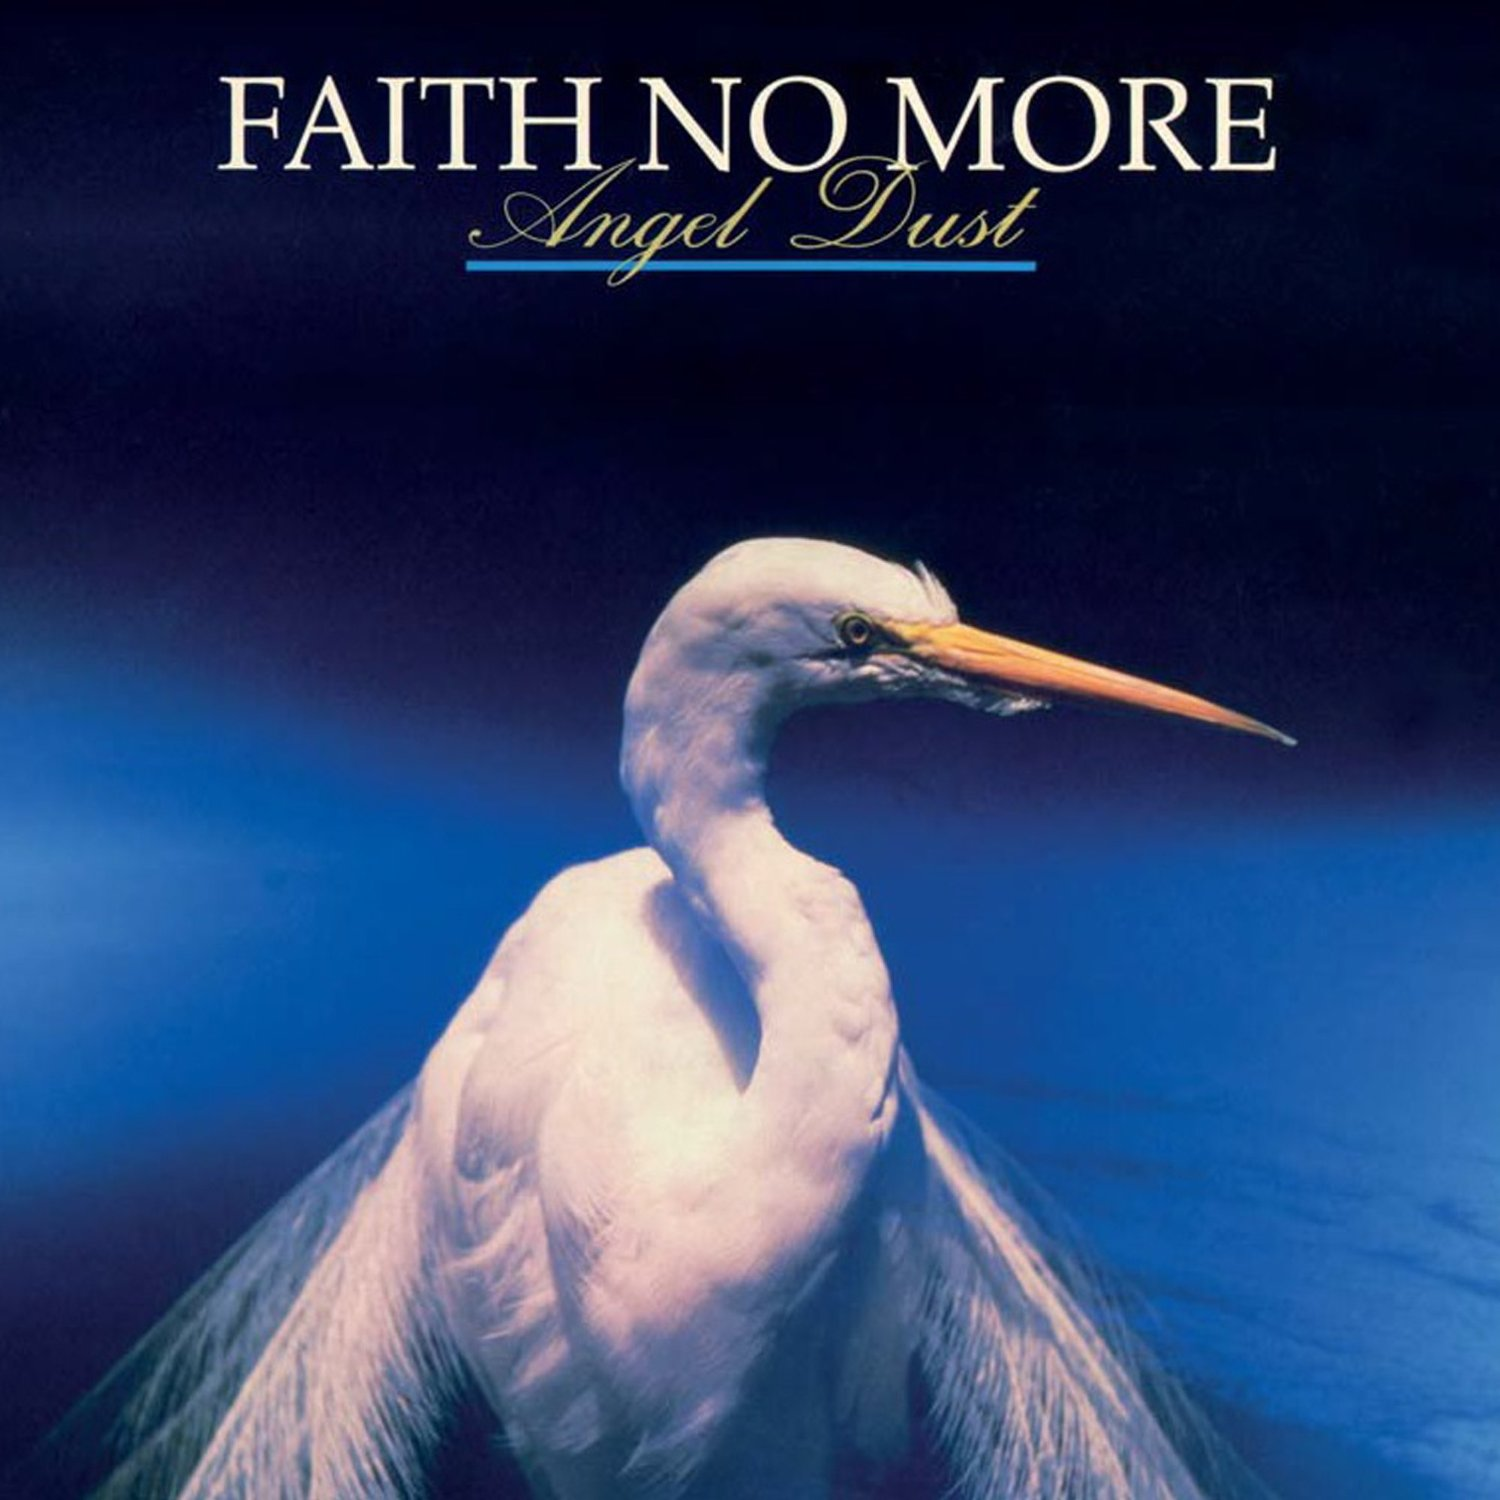 08 Faith No More Angel